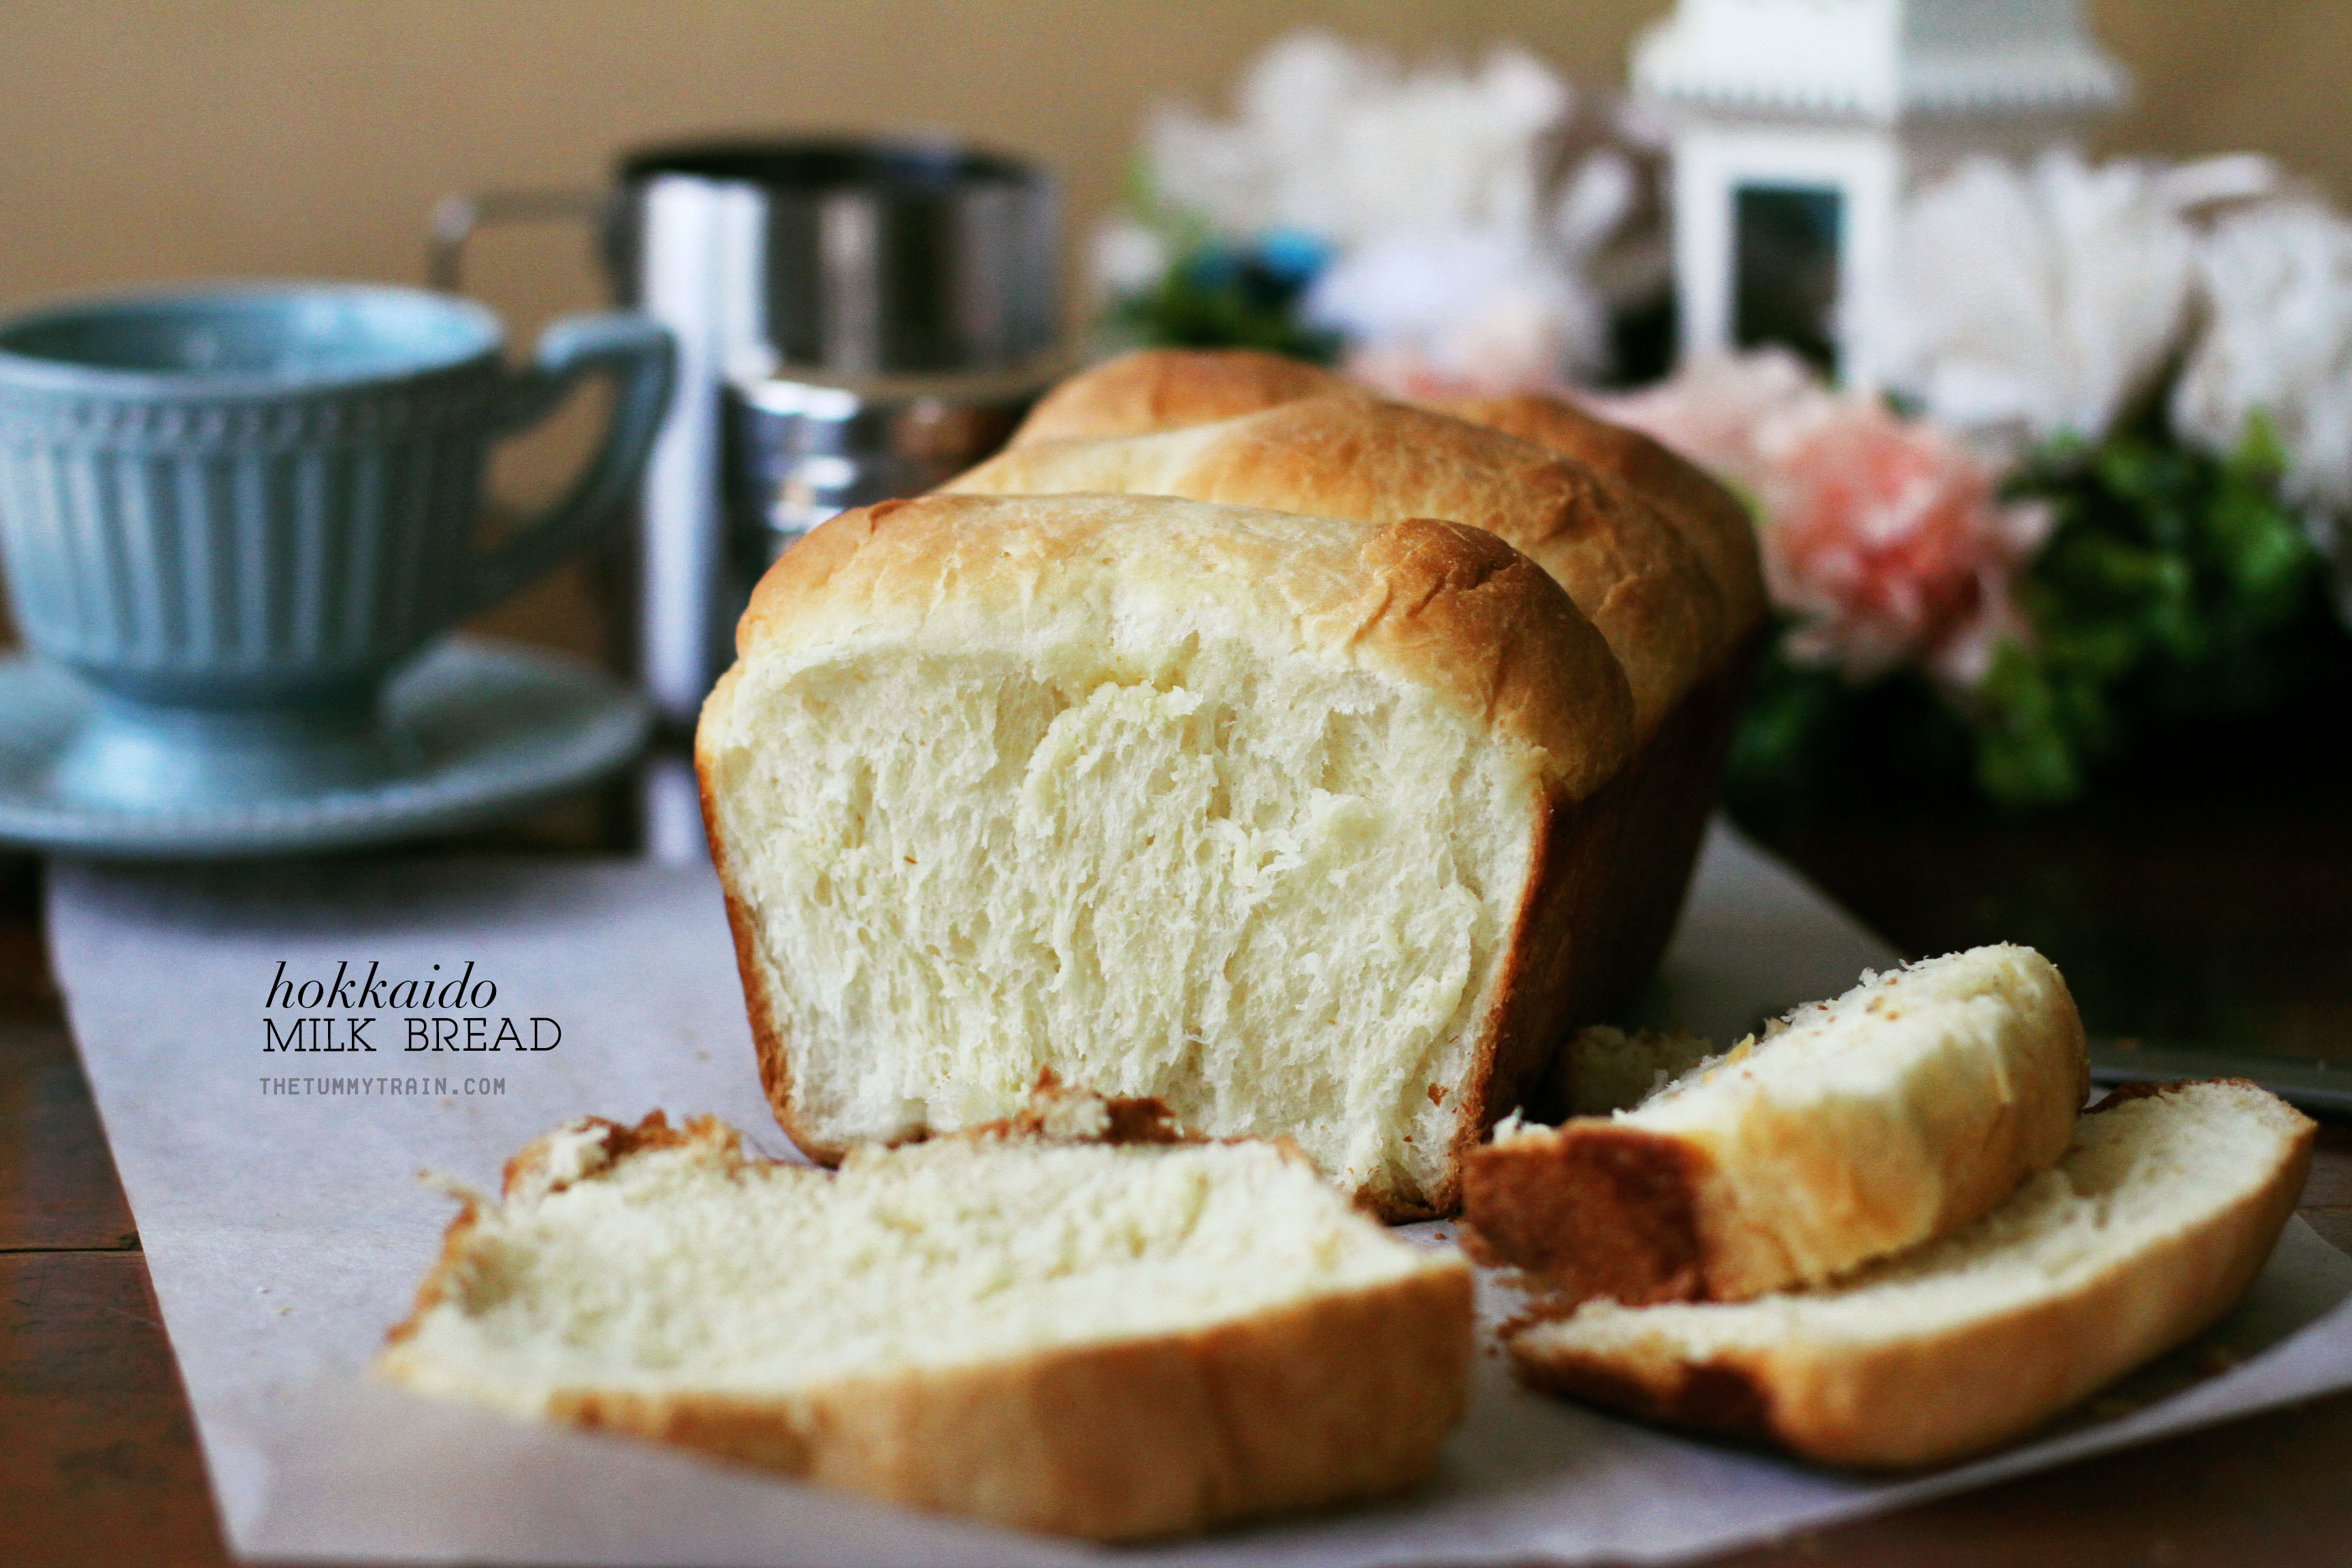 Hokkaido Milk Bread 1 - An unforgettable Hokkaido Milk Bread, and why everyone should be making it